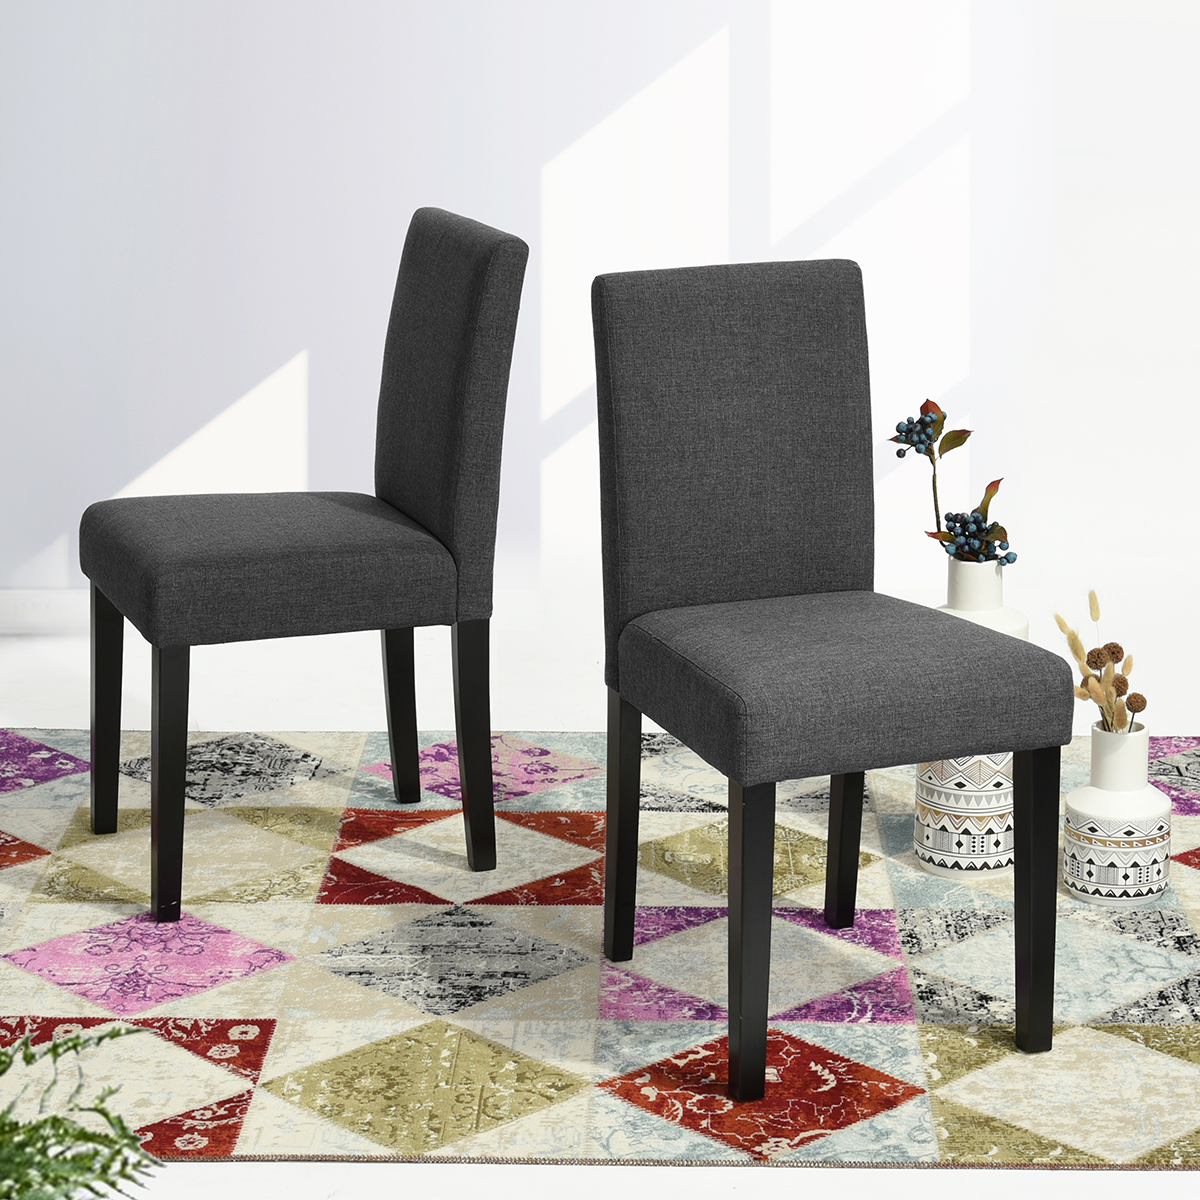 Details about Set of 2 Dining Chairs Fabric Parson Chair Side Chair for  Kitchen Restaurant